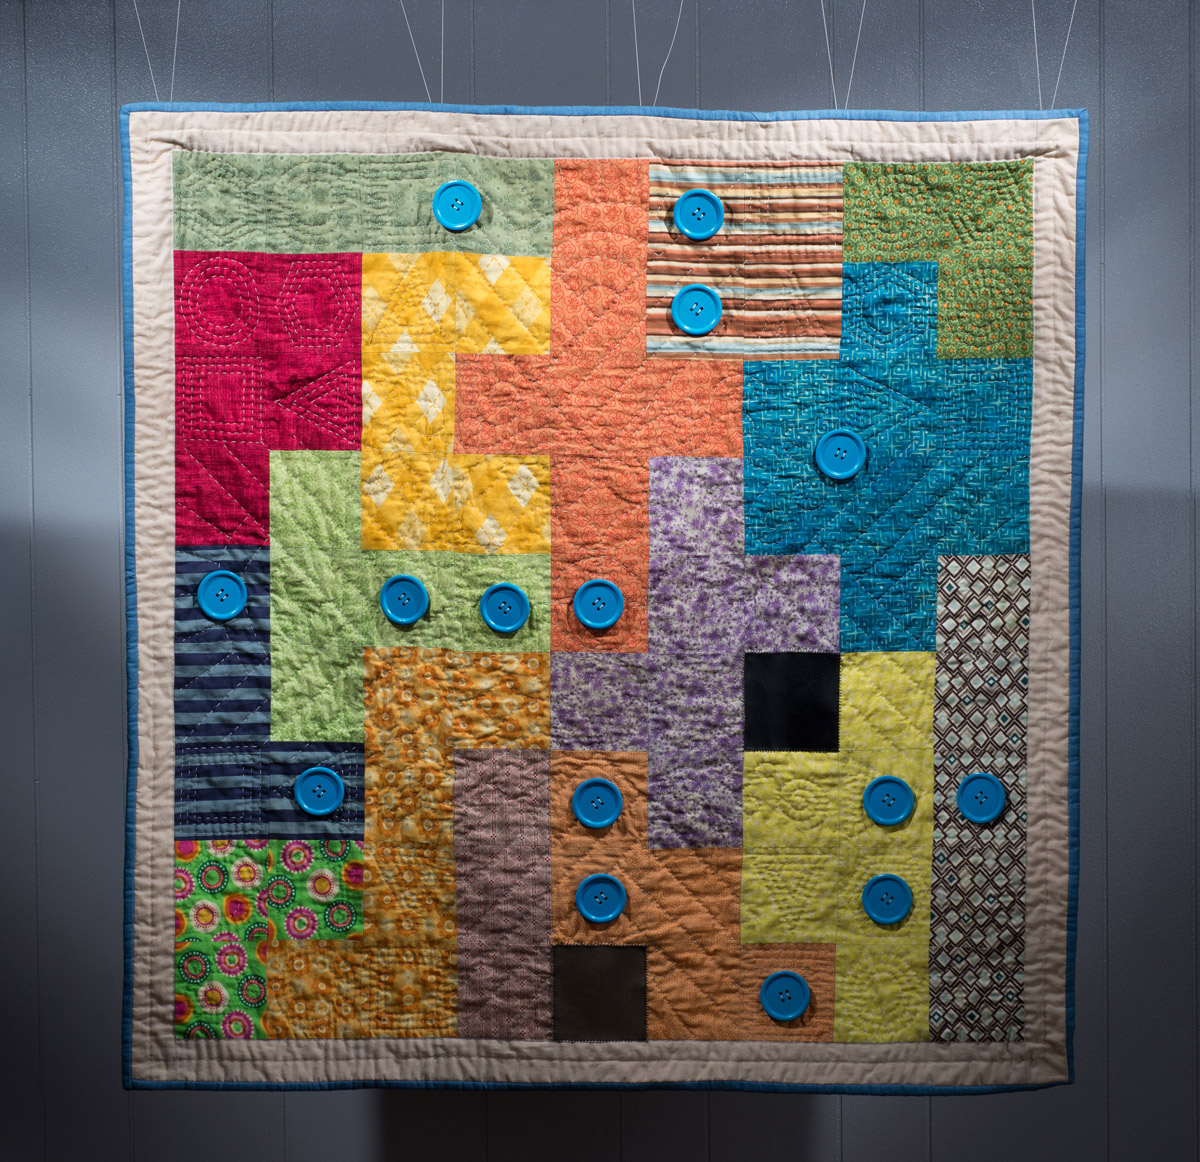 Final quilt based on the board game Patchwork.